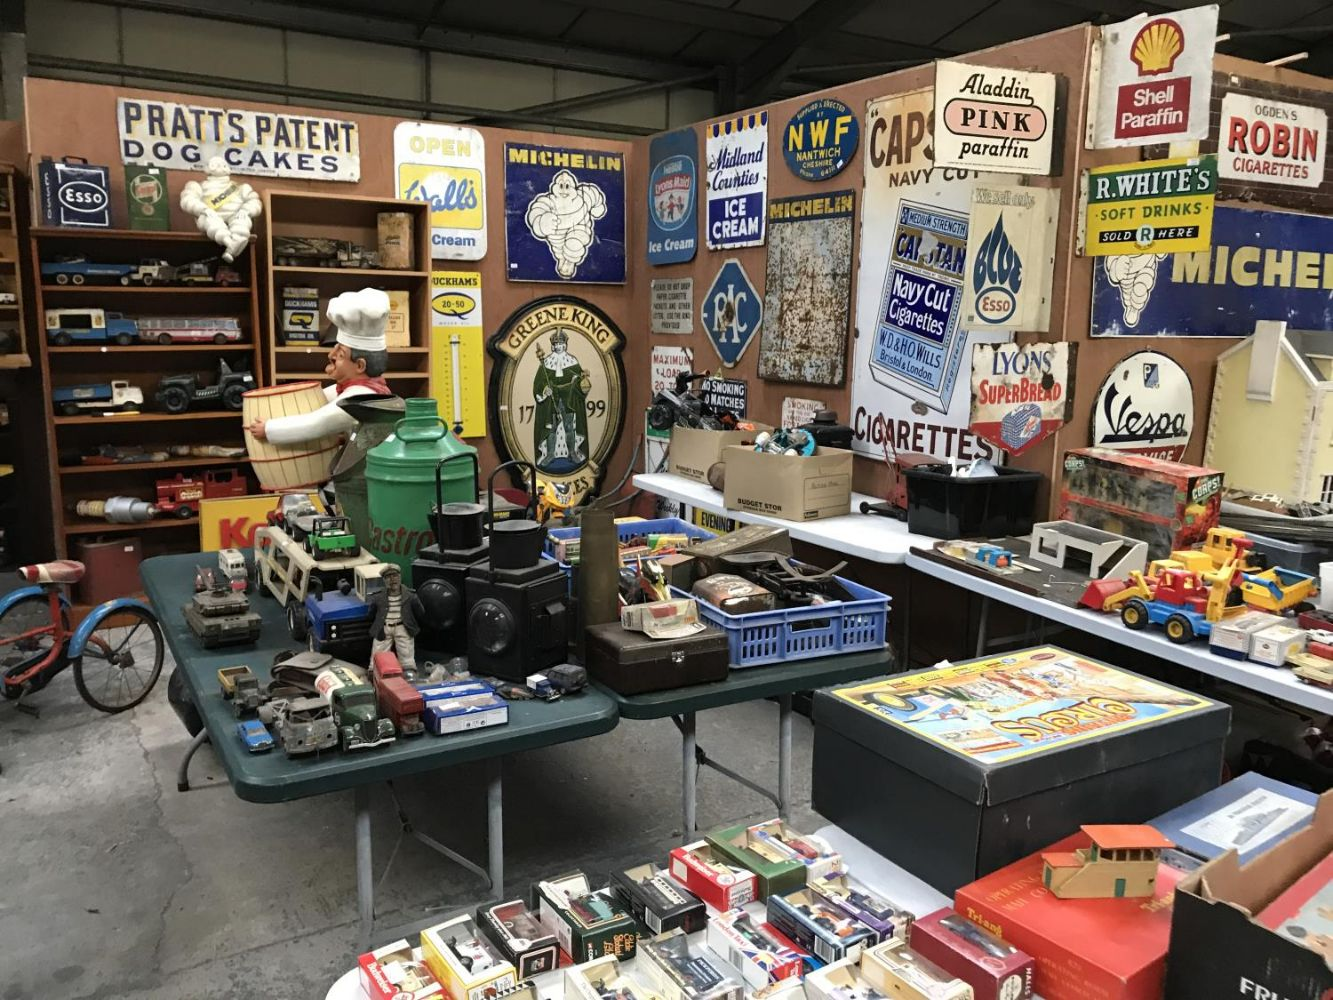 Two Day Auction Of Collectables, Antiques, Furniture, Vintage Items - with a special section for Musical Instruments